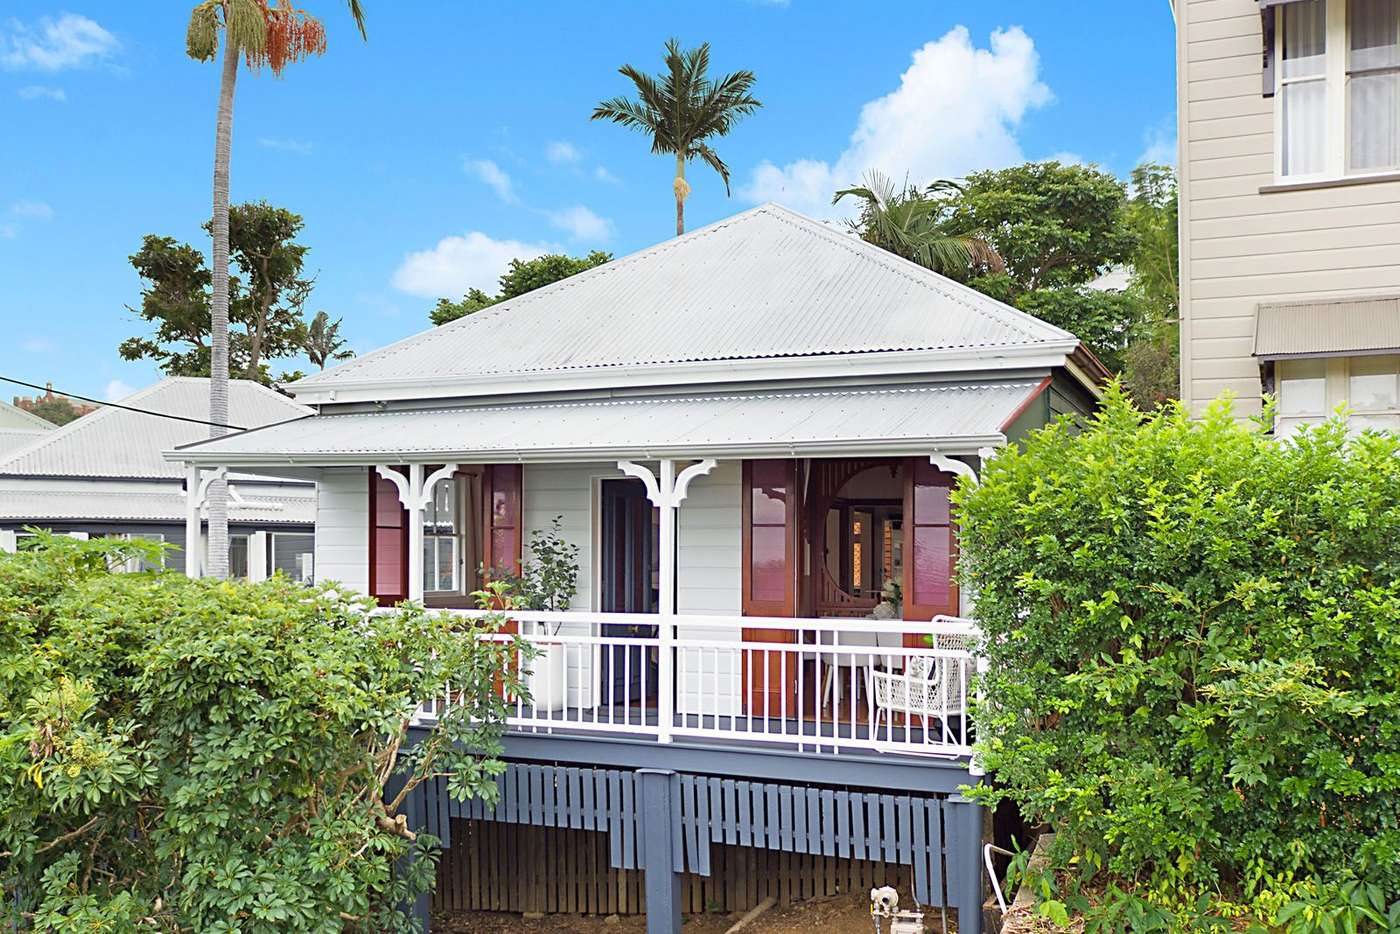 Main view of Homely house listing, 47 Mountjoy Street, Petrie Terrace QLD 4000